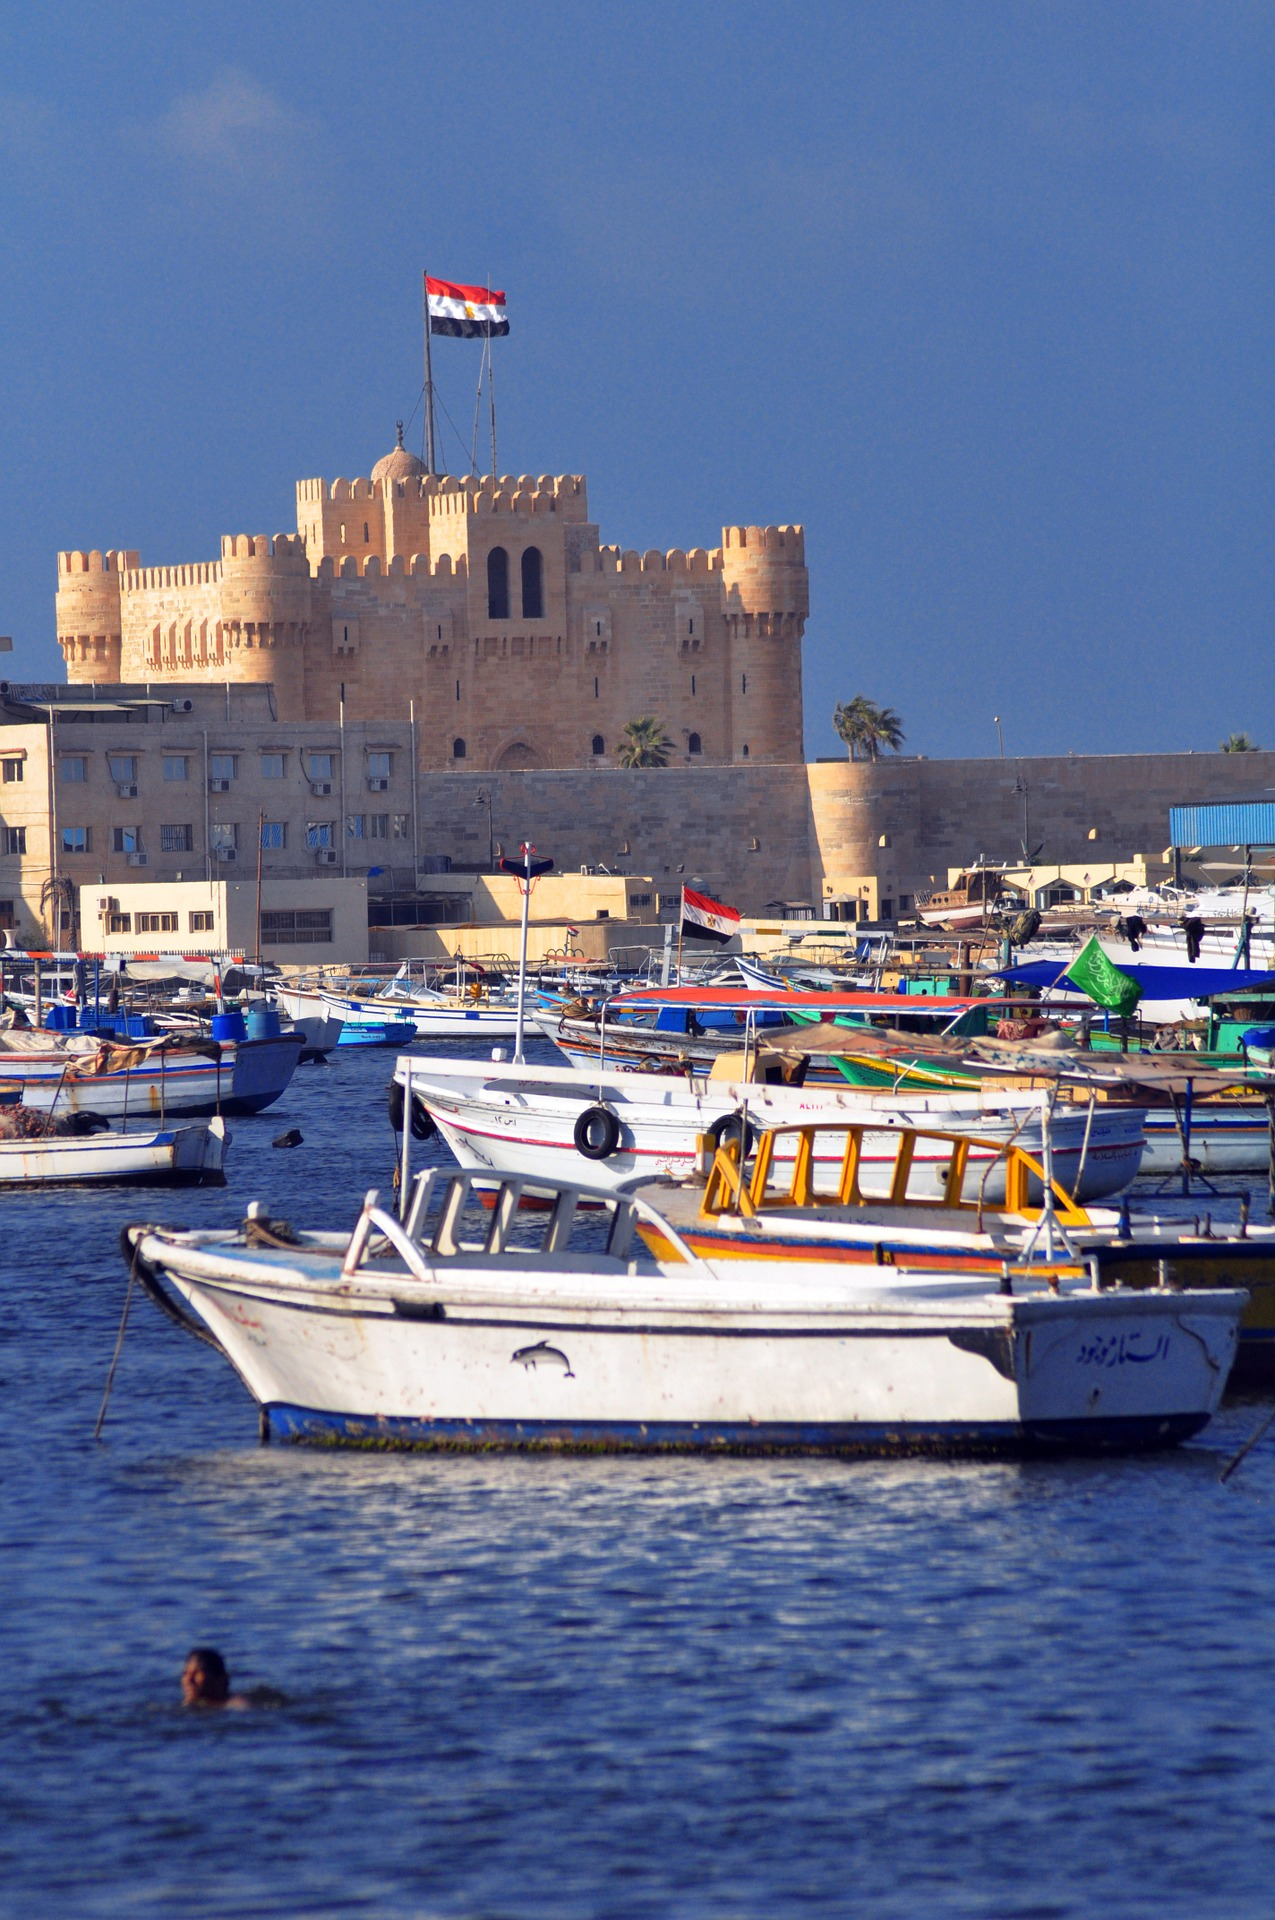 Boats near the Citadel of Qaitbay in Alexandria, Egypt